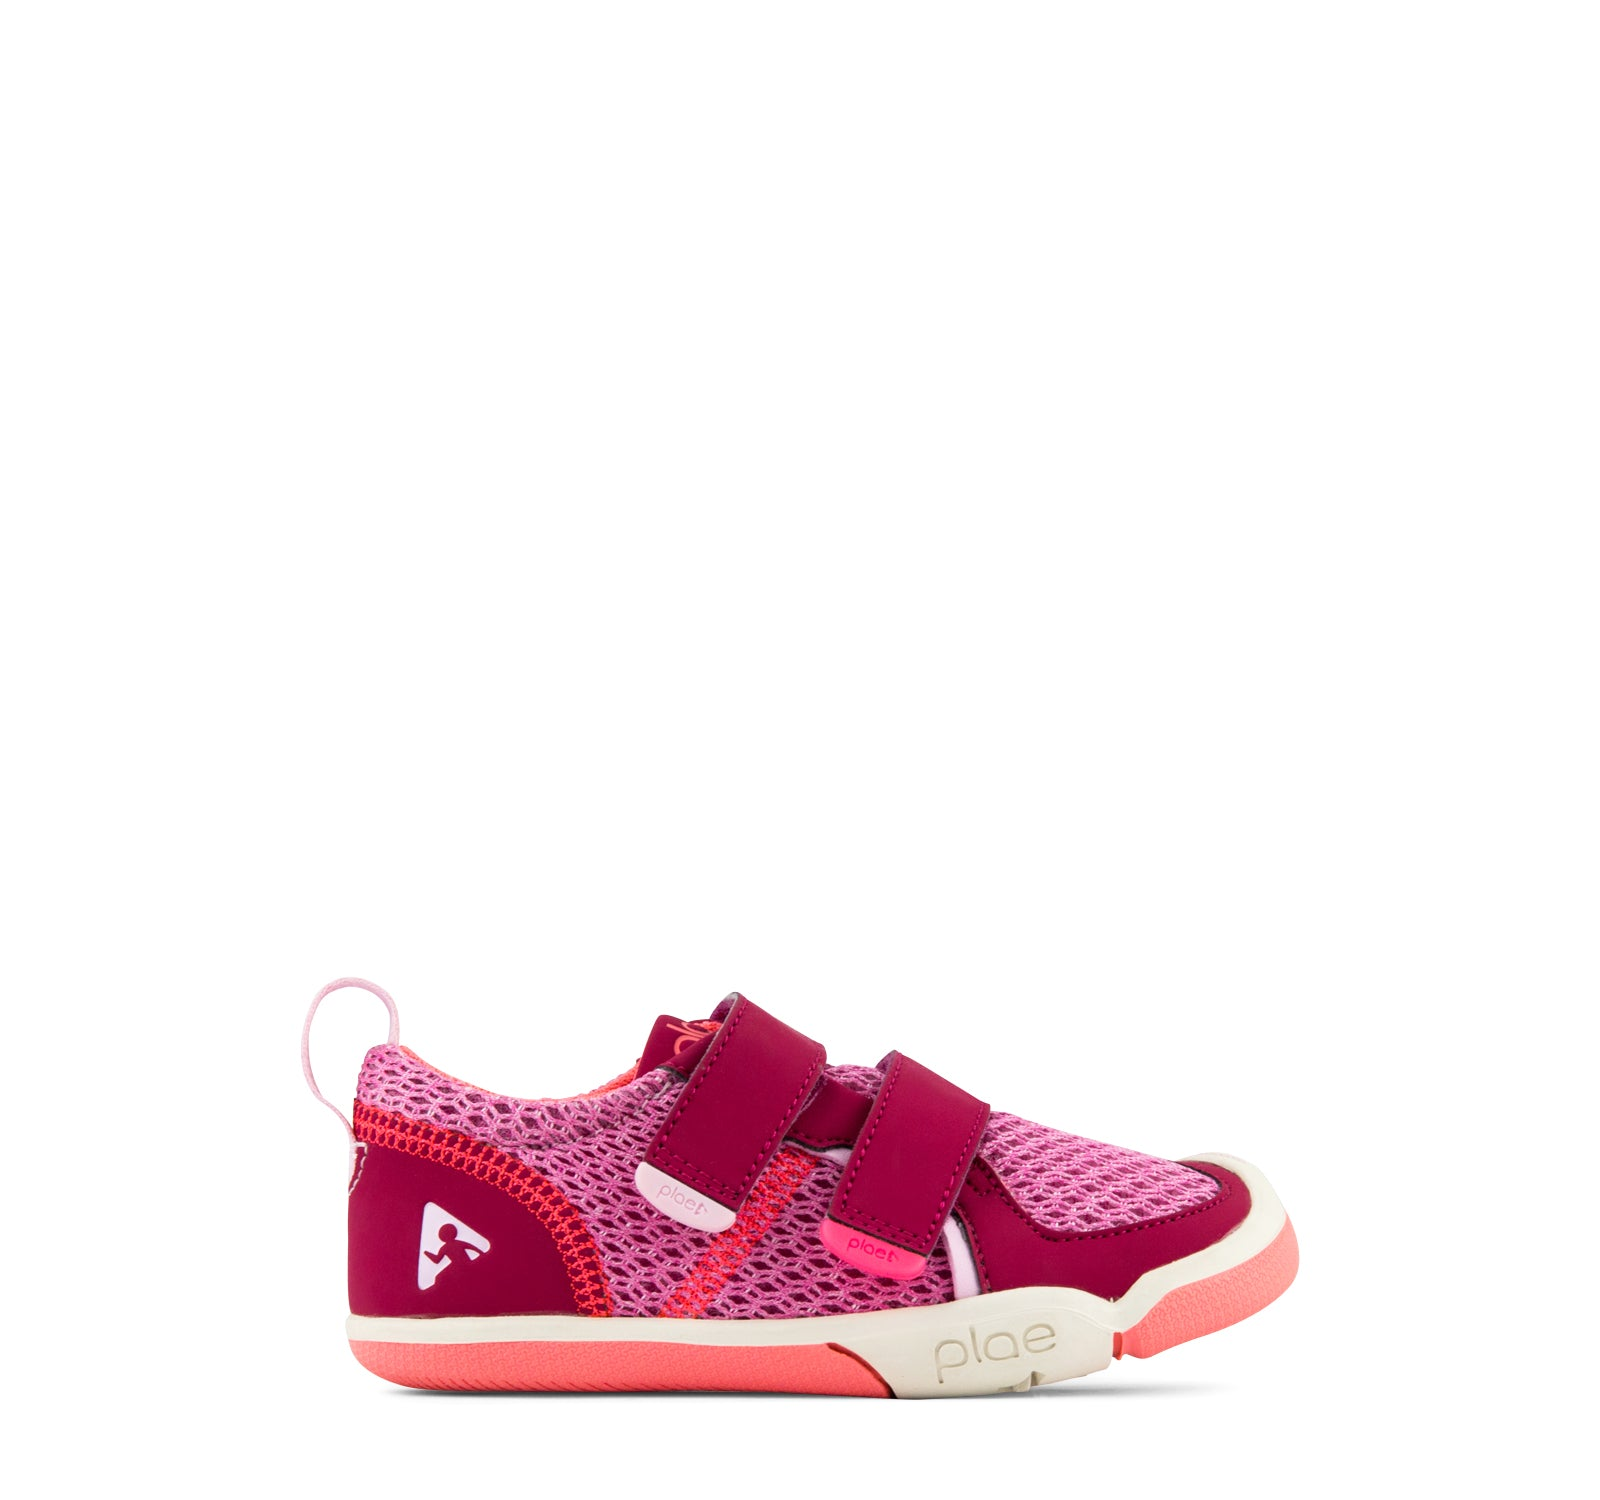 Plae Ty Girls' Sneaker in Hibiscus